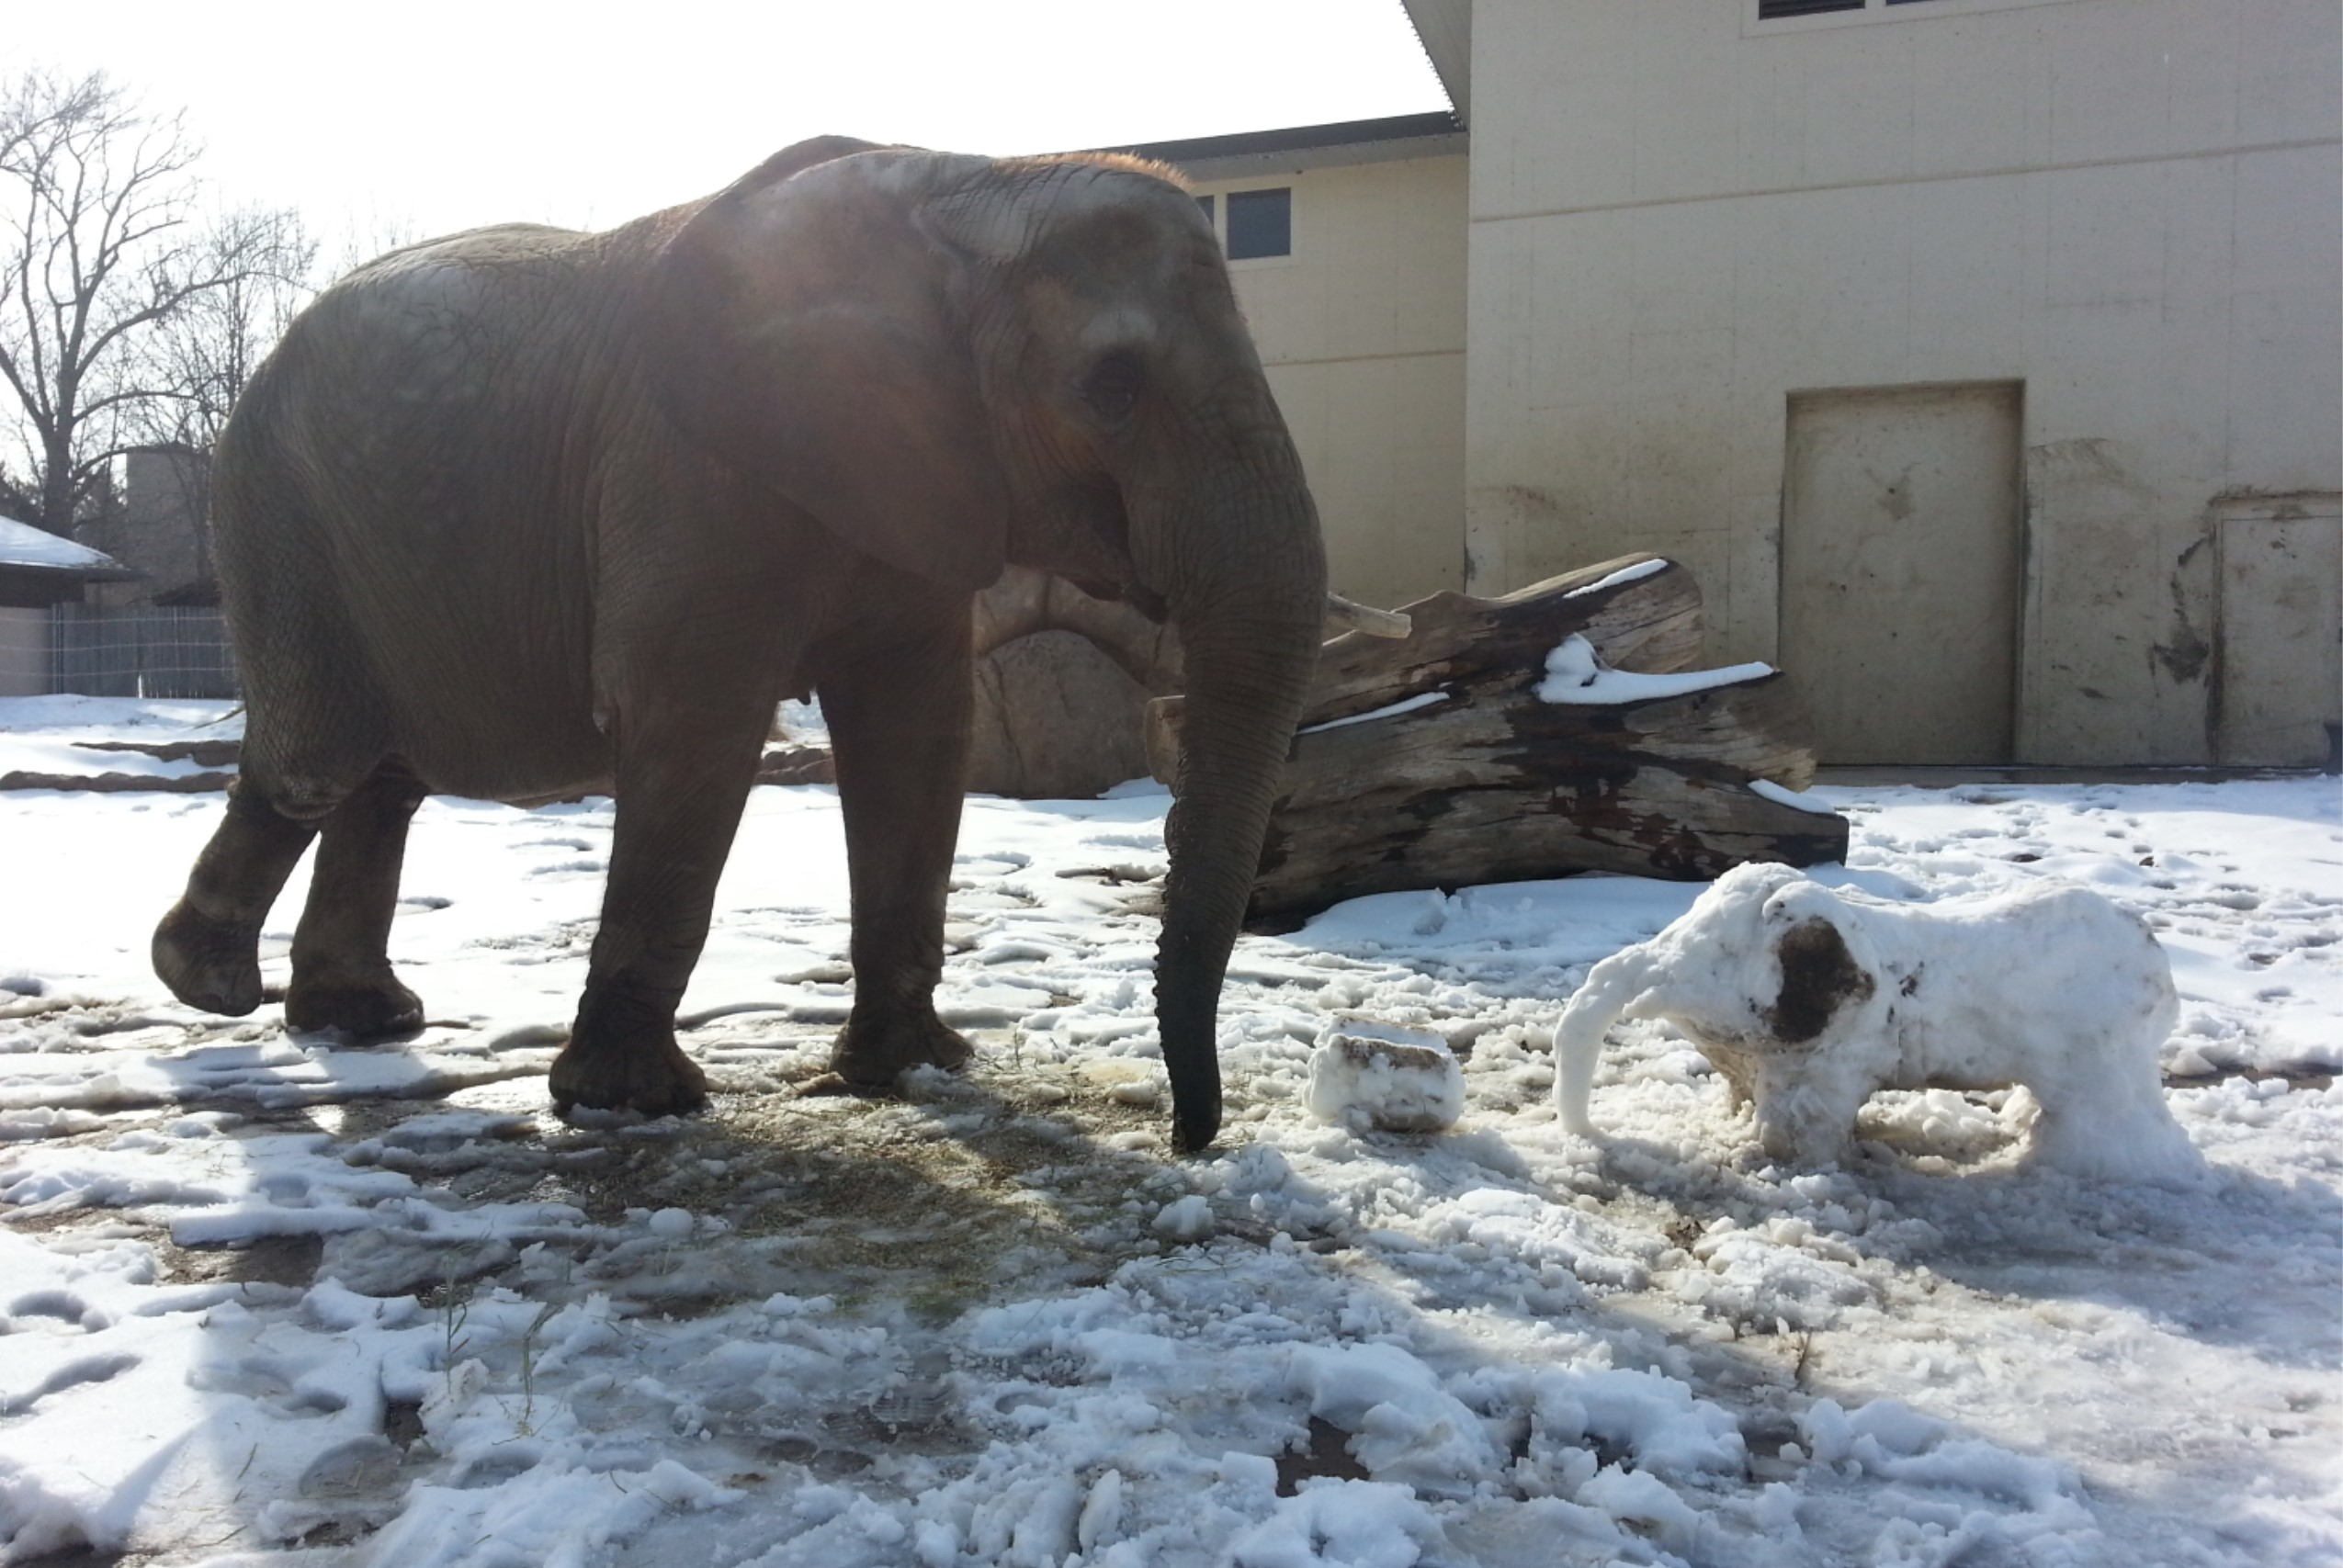 Tembo the African Elephant enjoying enrichment prepared by her zookeepers.